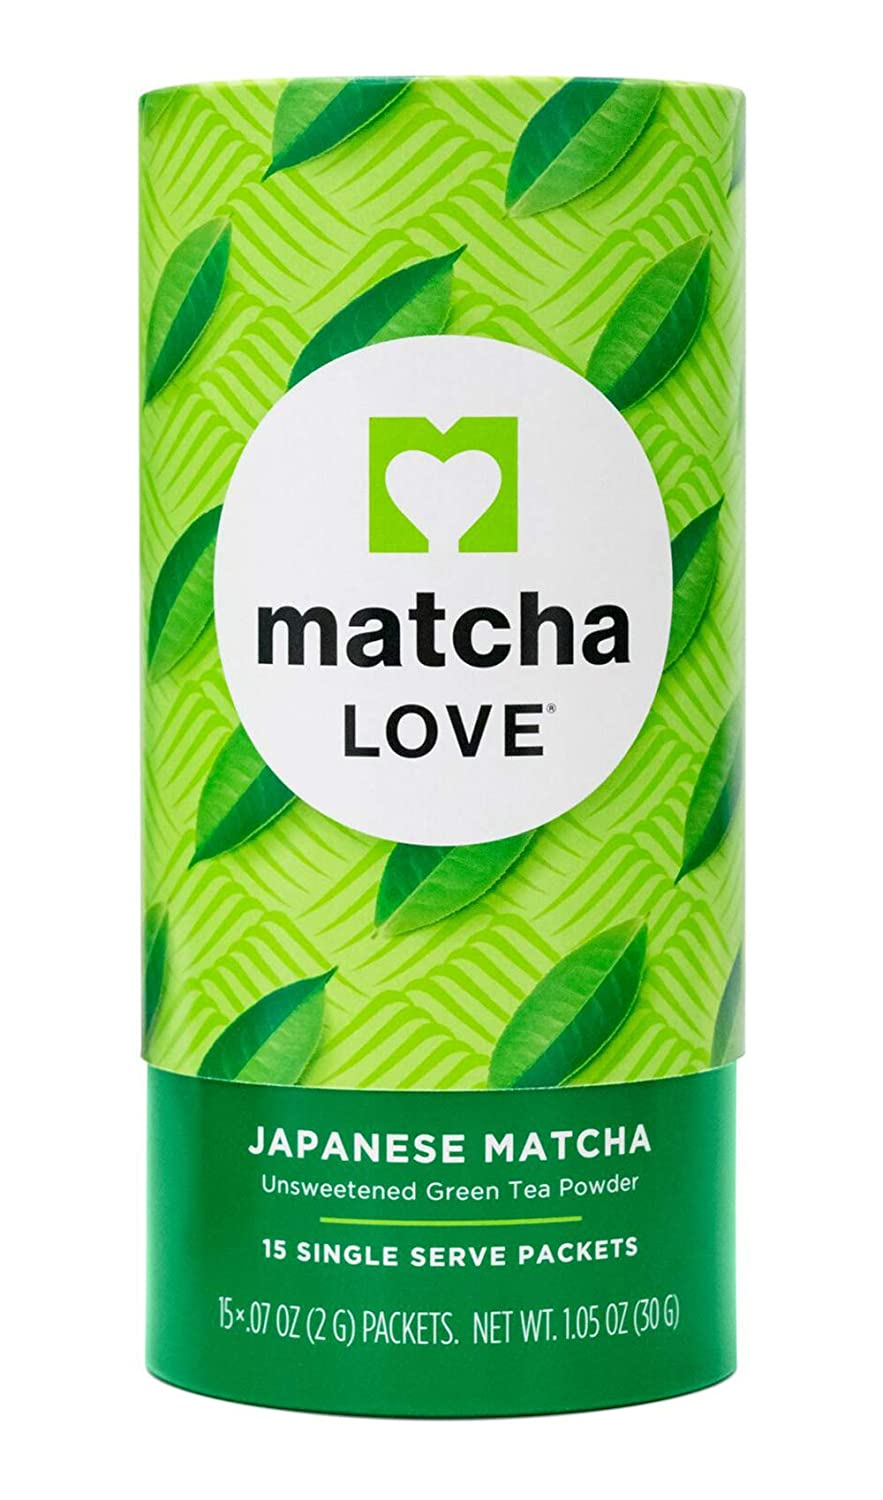 Matcha Love Japanese Unsweetened Green Tea Choice Powder outlet 15 Sin